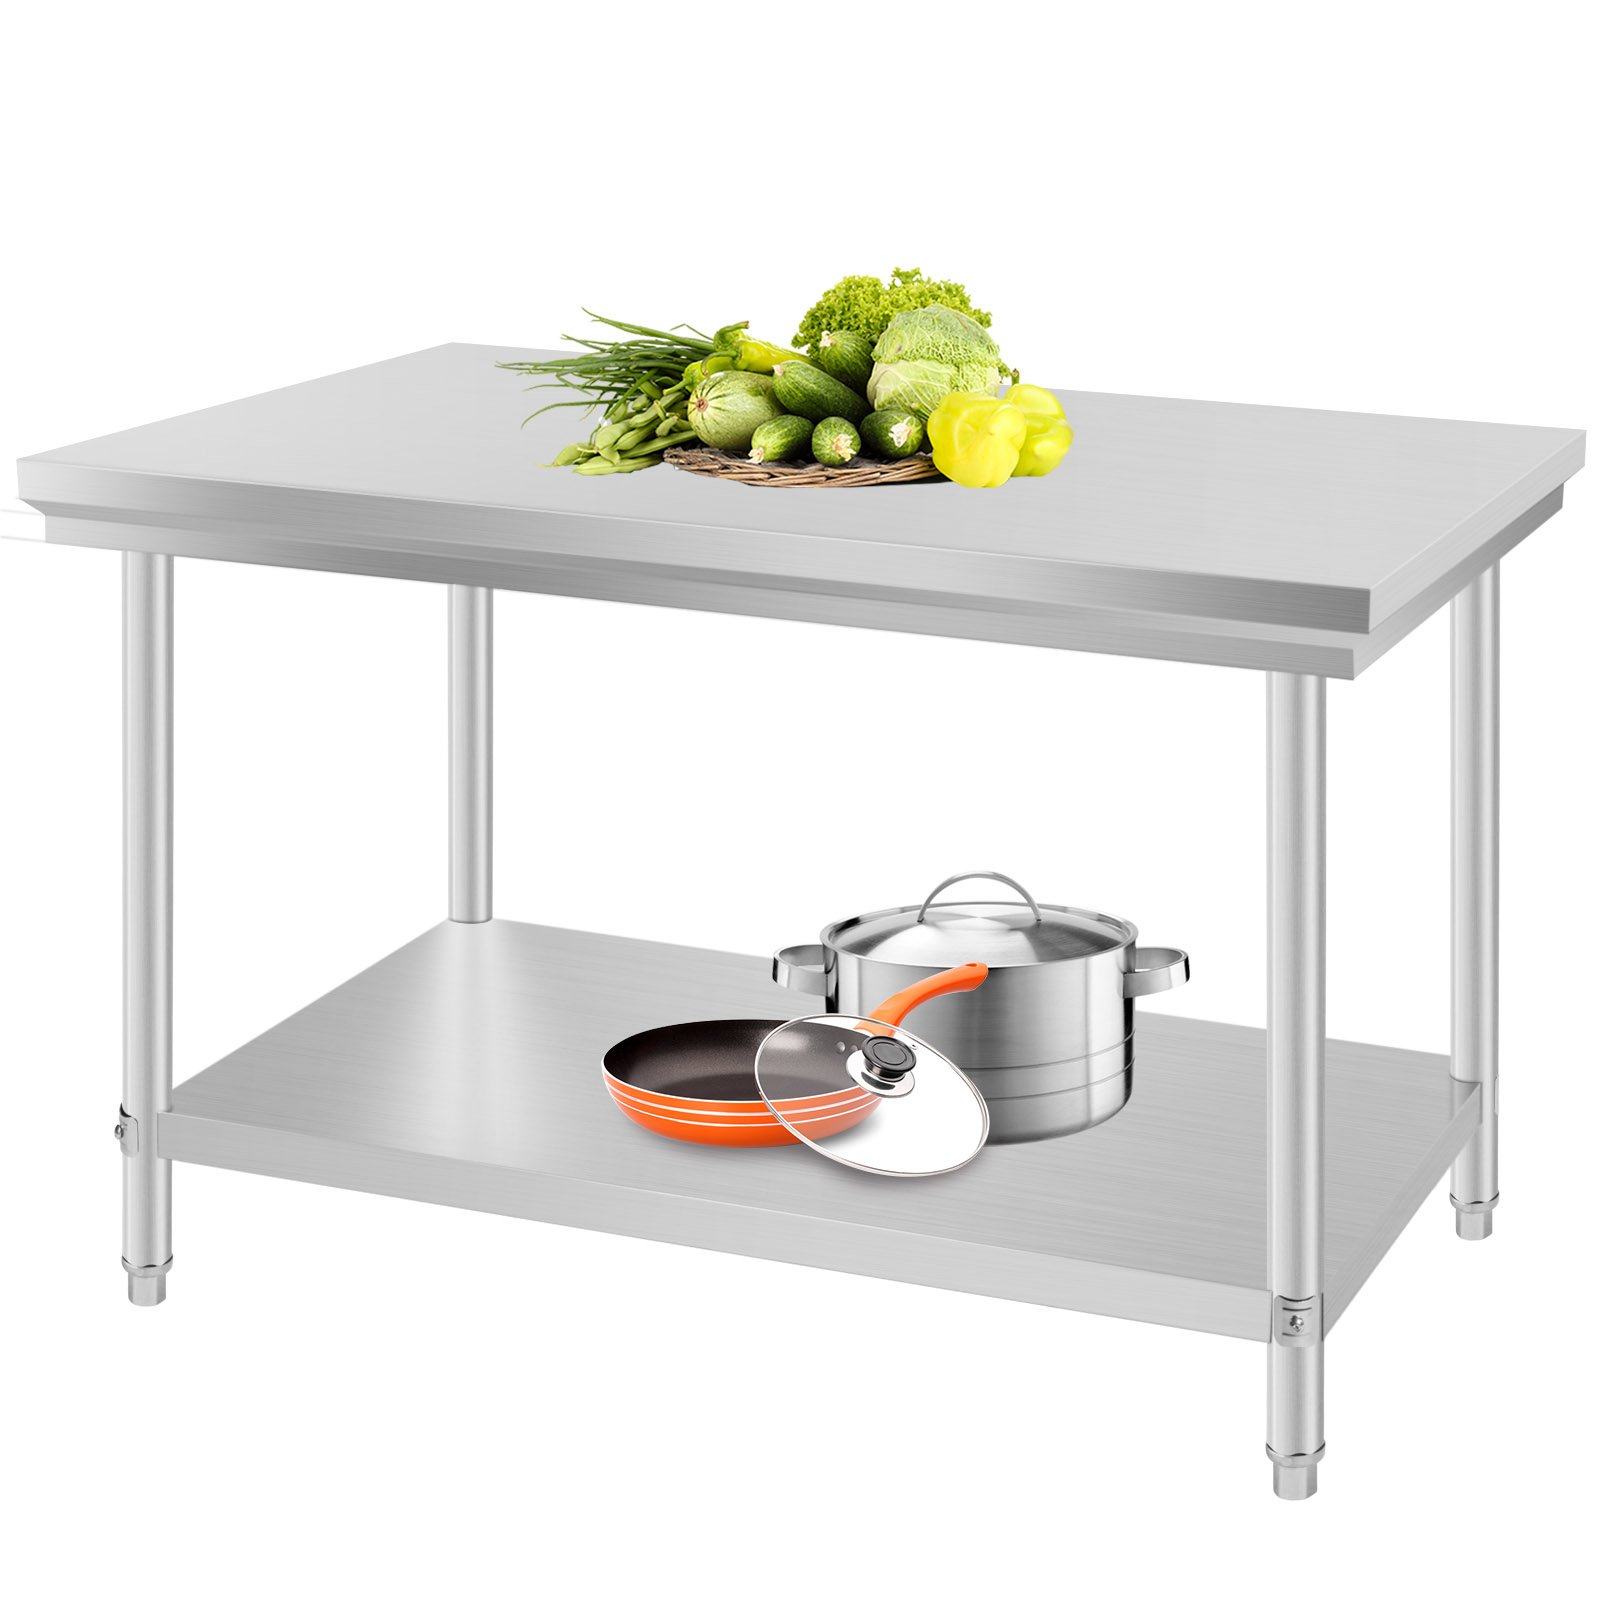 Stainless steel commercial kitchen work food prep table 24 x 48 new ebay - Stainless kitchen tables ...